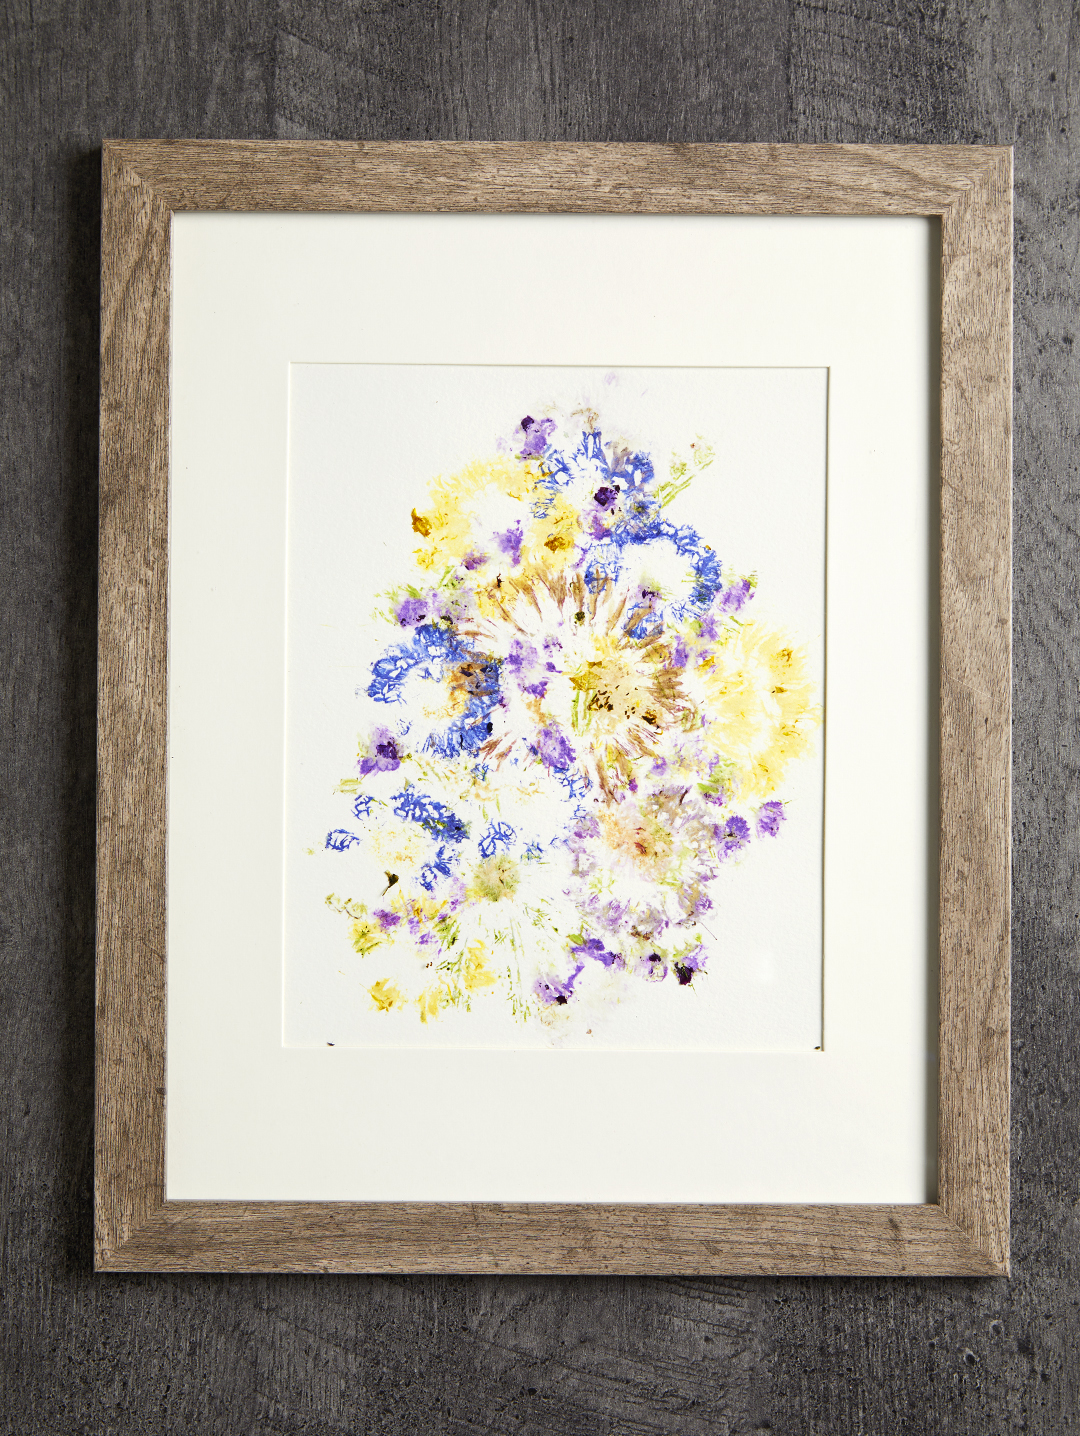 smashed flower colors in wooden frame